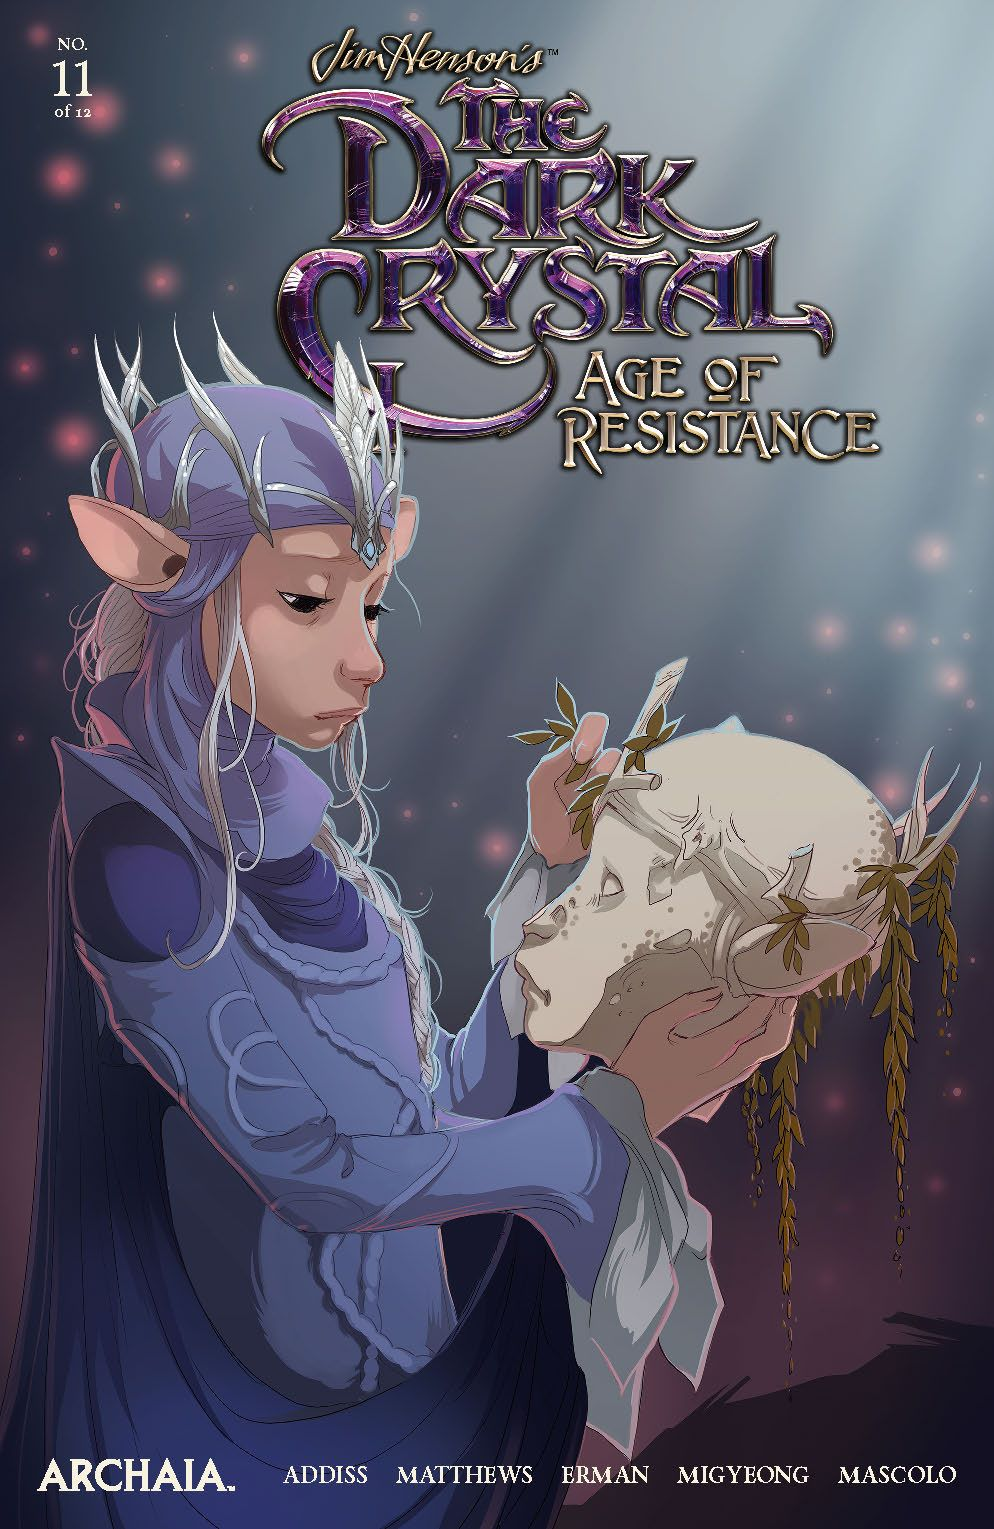 DarkCrystal_AgeResistance_011_Cover_Main ComicList Previews: JIM HENSON'S THE DARK CRYSTAL AGE OF RESISTANCE #11